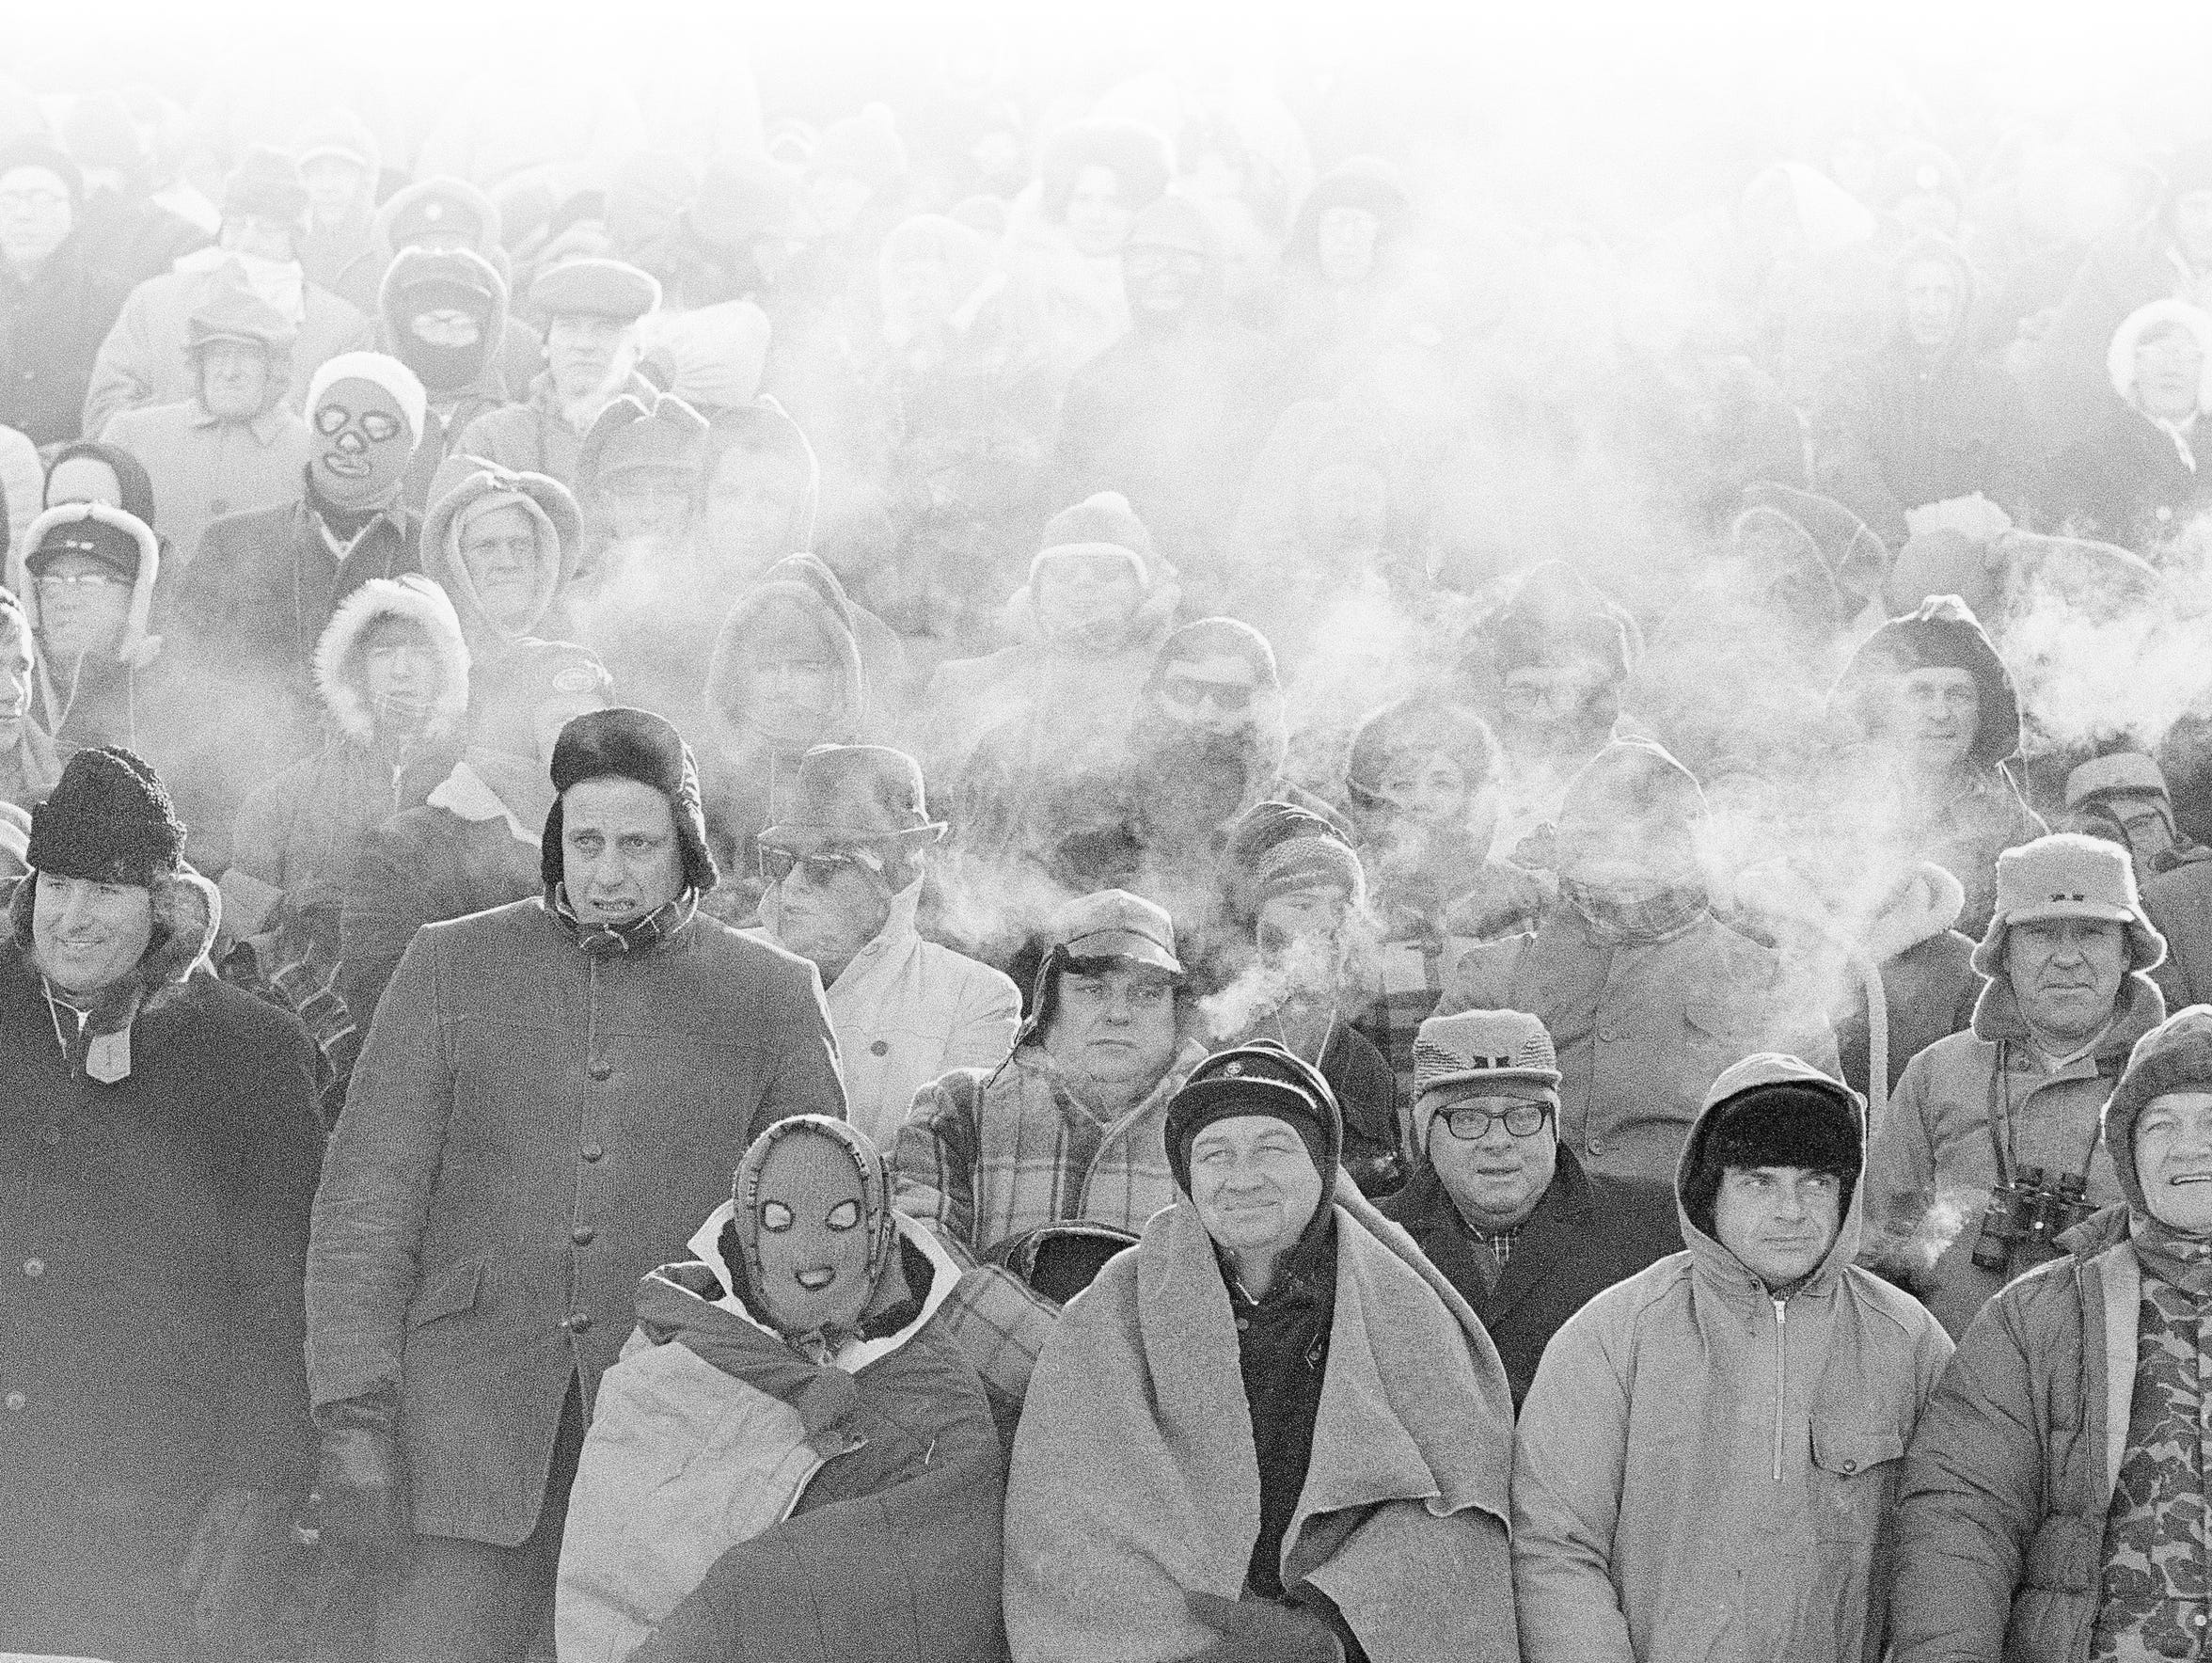 With a temperature of 13 degrees below zero at kickoff, 50,861 fans showed up at Lambeau Field on Dec. 31, 1967 for the NFL Championship Game, better known as the Ice Bowl.